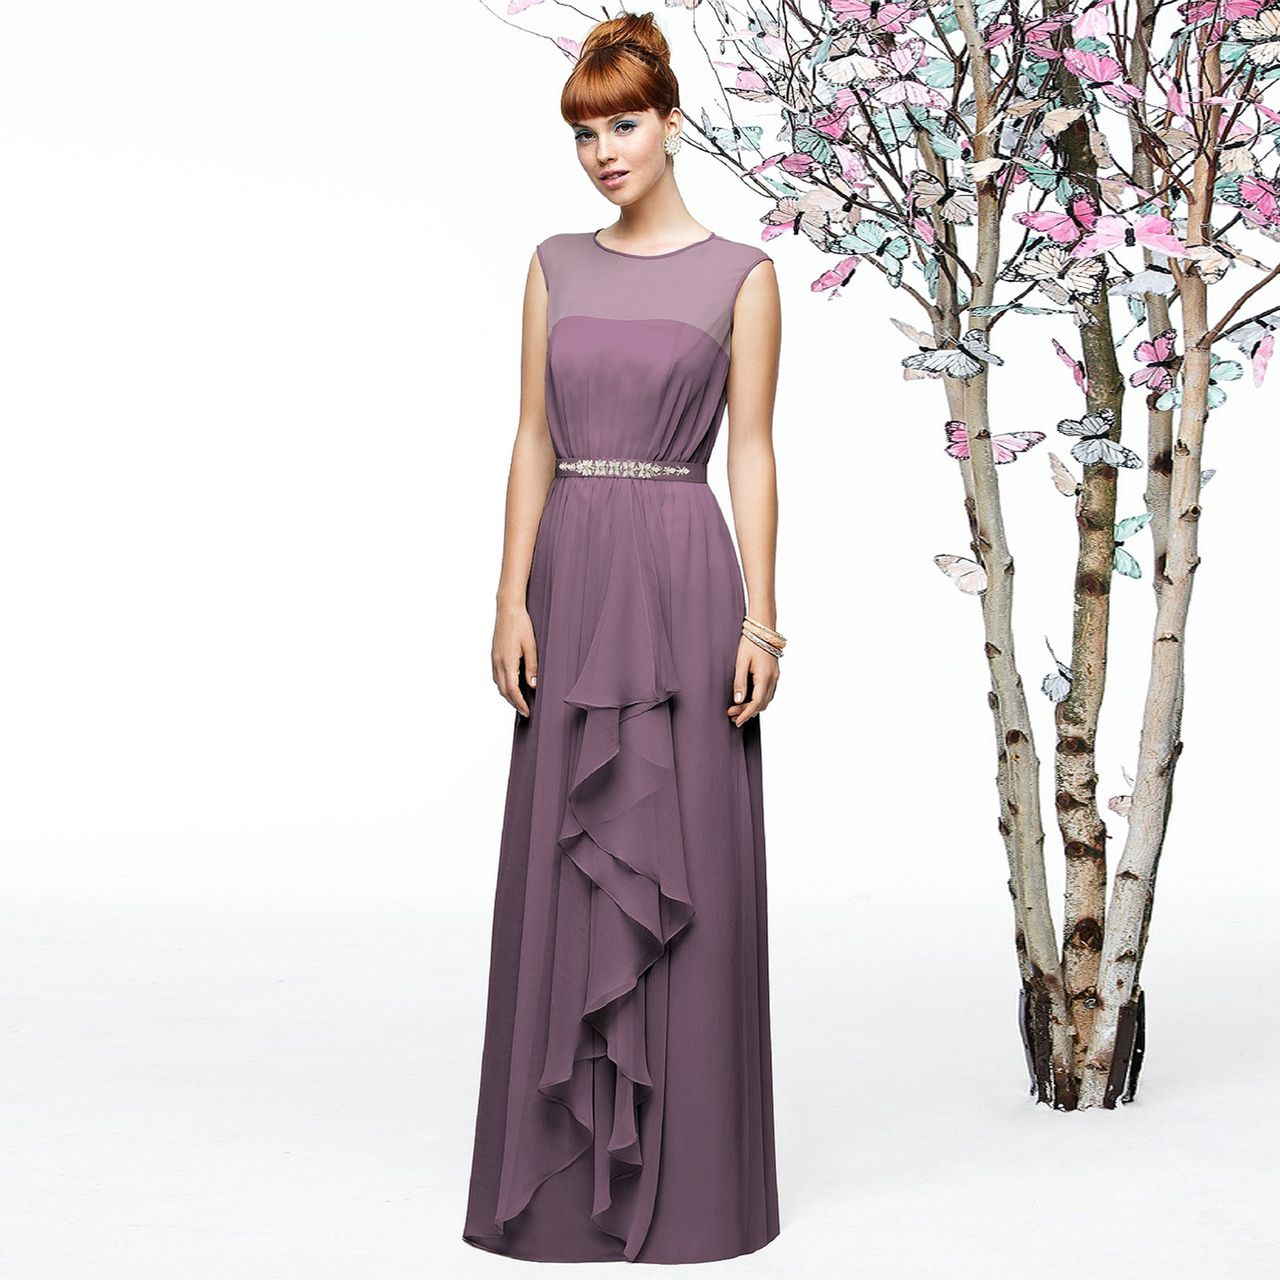 BREANA Dress By Lela Rose Bridesmaids - Fashionably Yours ...